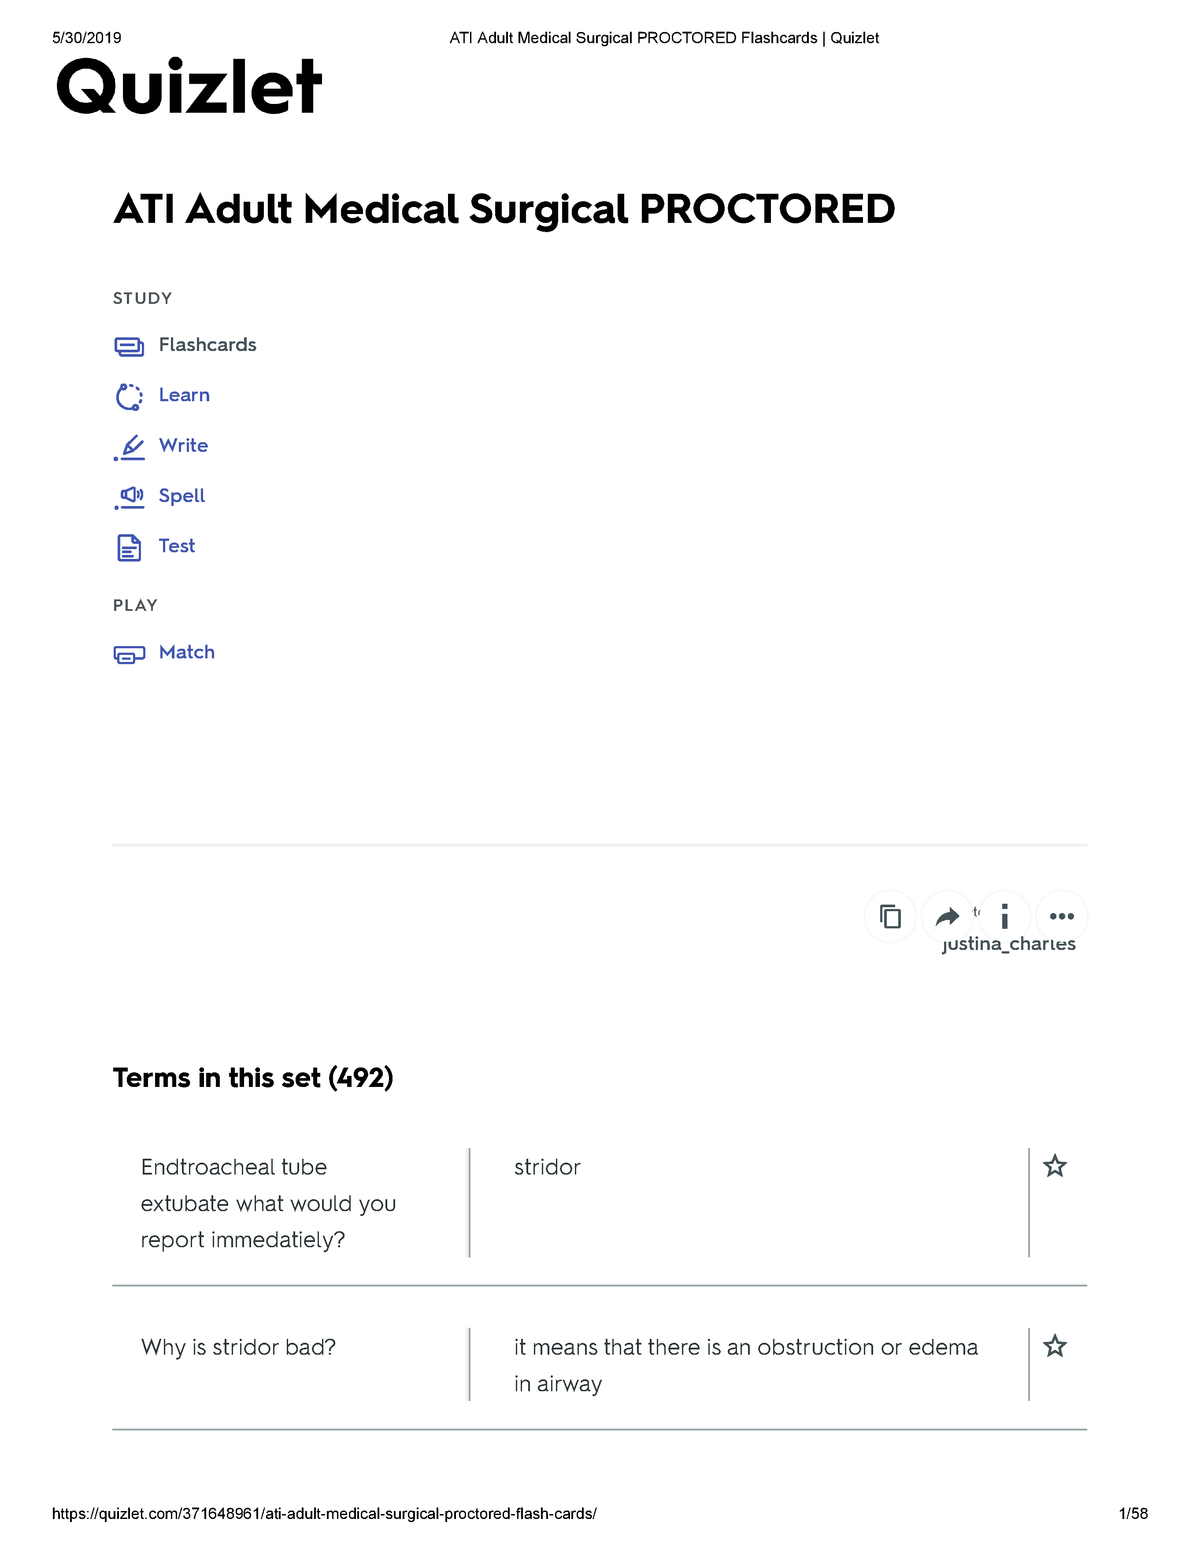 ATI Adult Medical Surgical Proctored Flashcards Quizlet